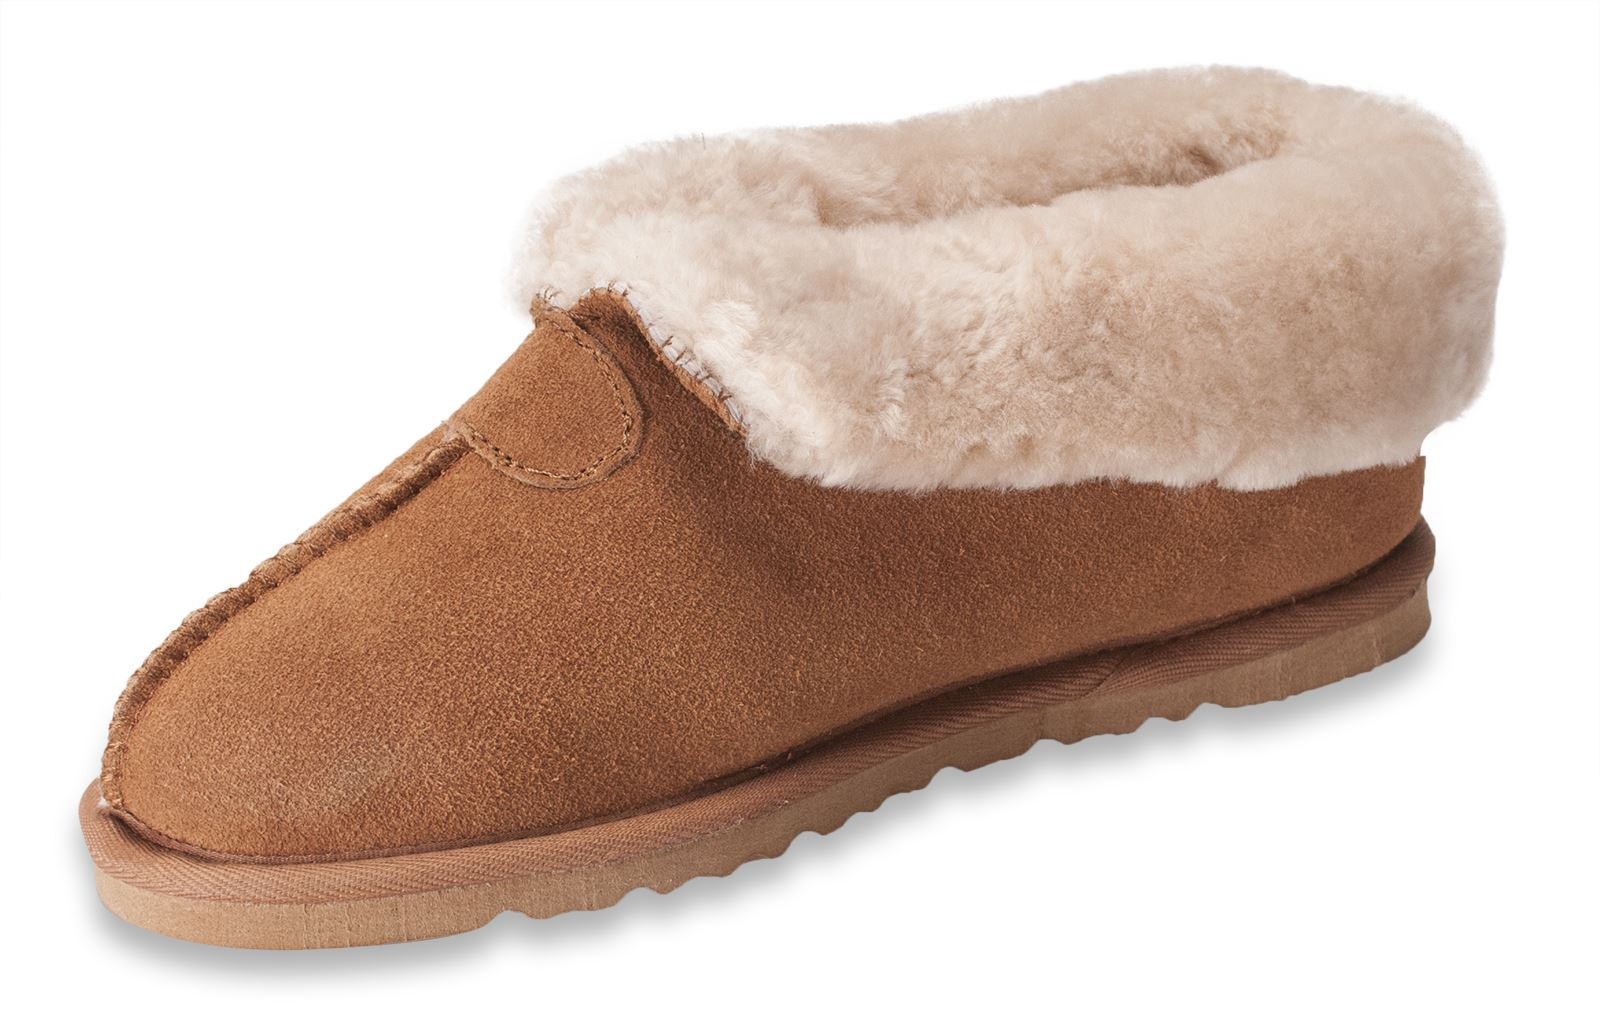 0407eb1401cda Details about Nordvek Ladies Genuine Sheepskin Slippers Boots Hard Rubber  Sole Womens 413-100